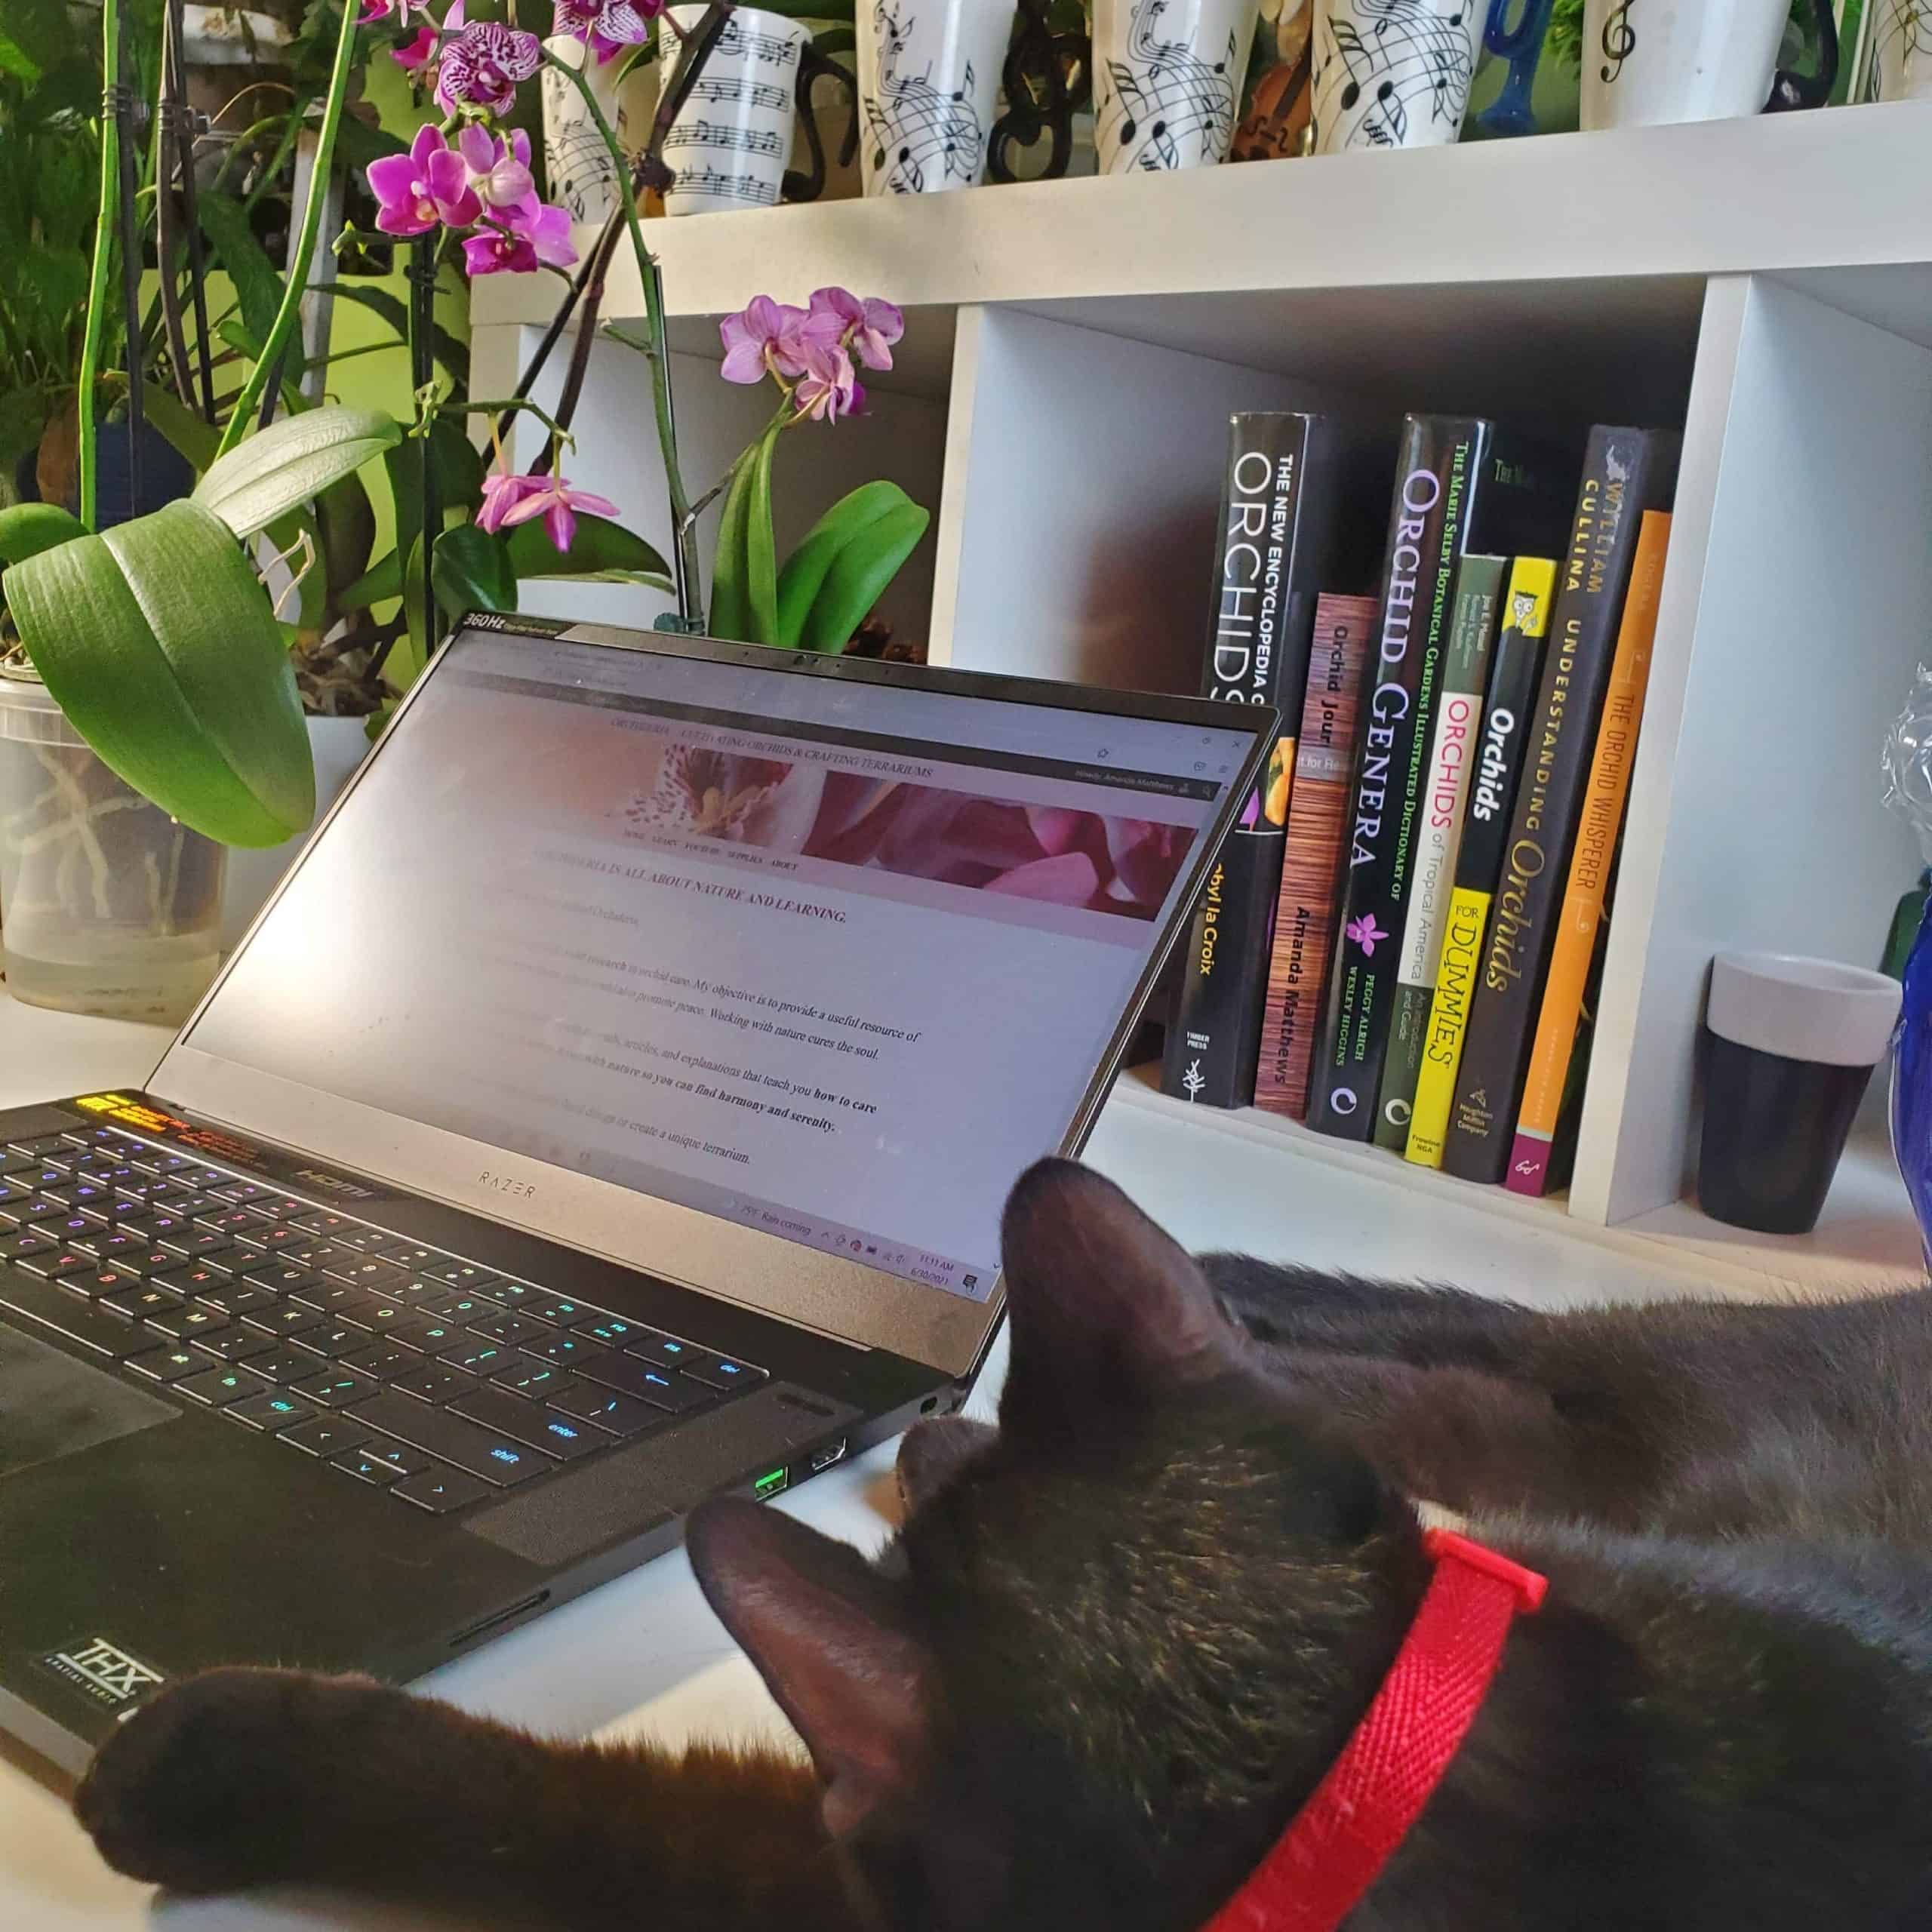 Cat by the laptop